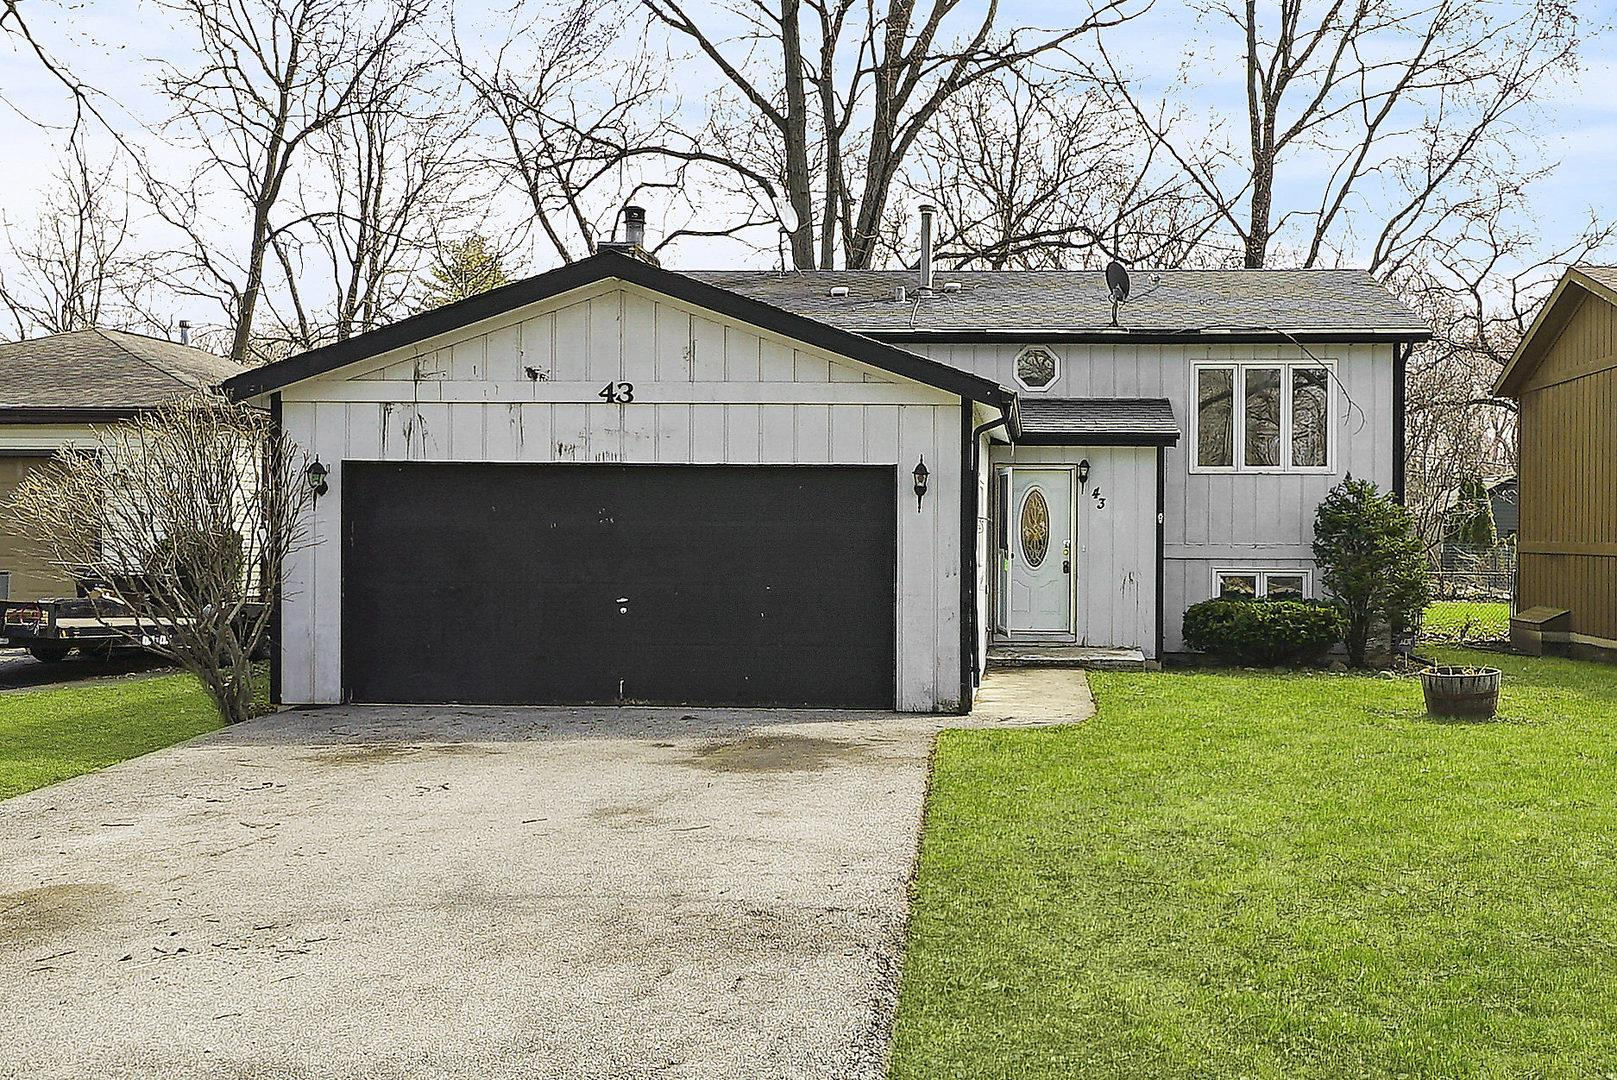 43 Honeysuckle Lane, Crystal Lake, IL 60014 - #: 10689392